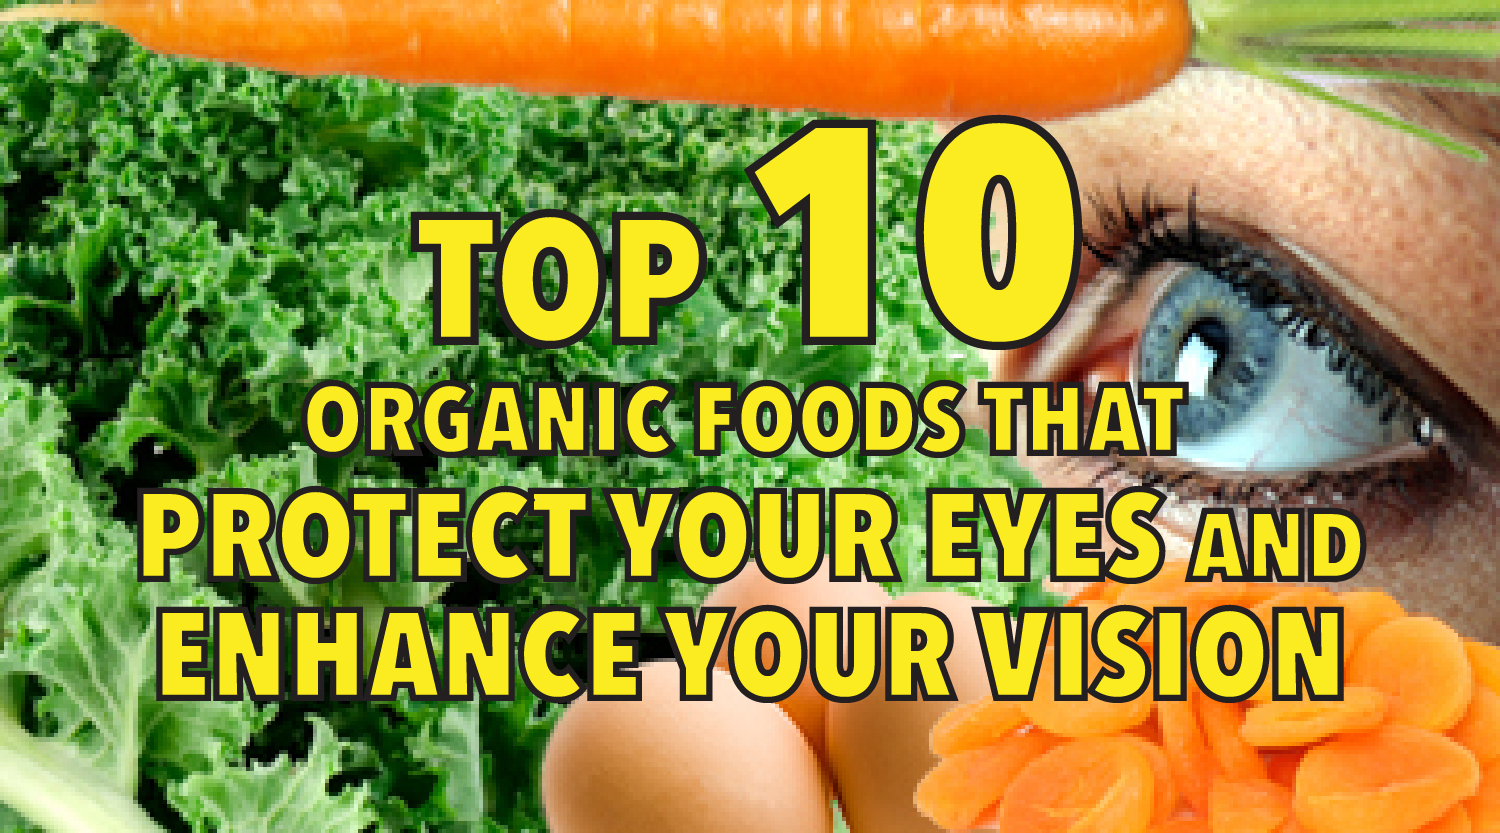 Top 10 Organic Foods that Protect Your Eyes and Enhance Your Vision